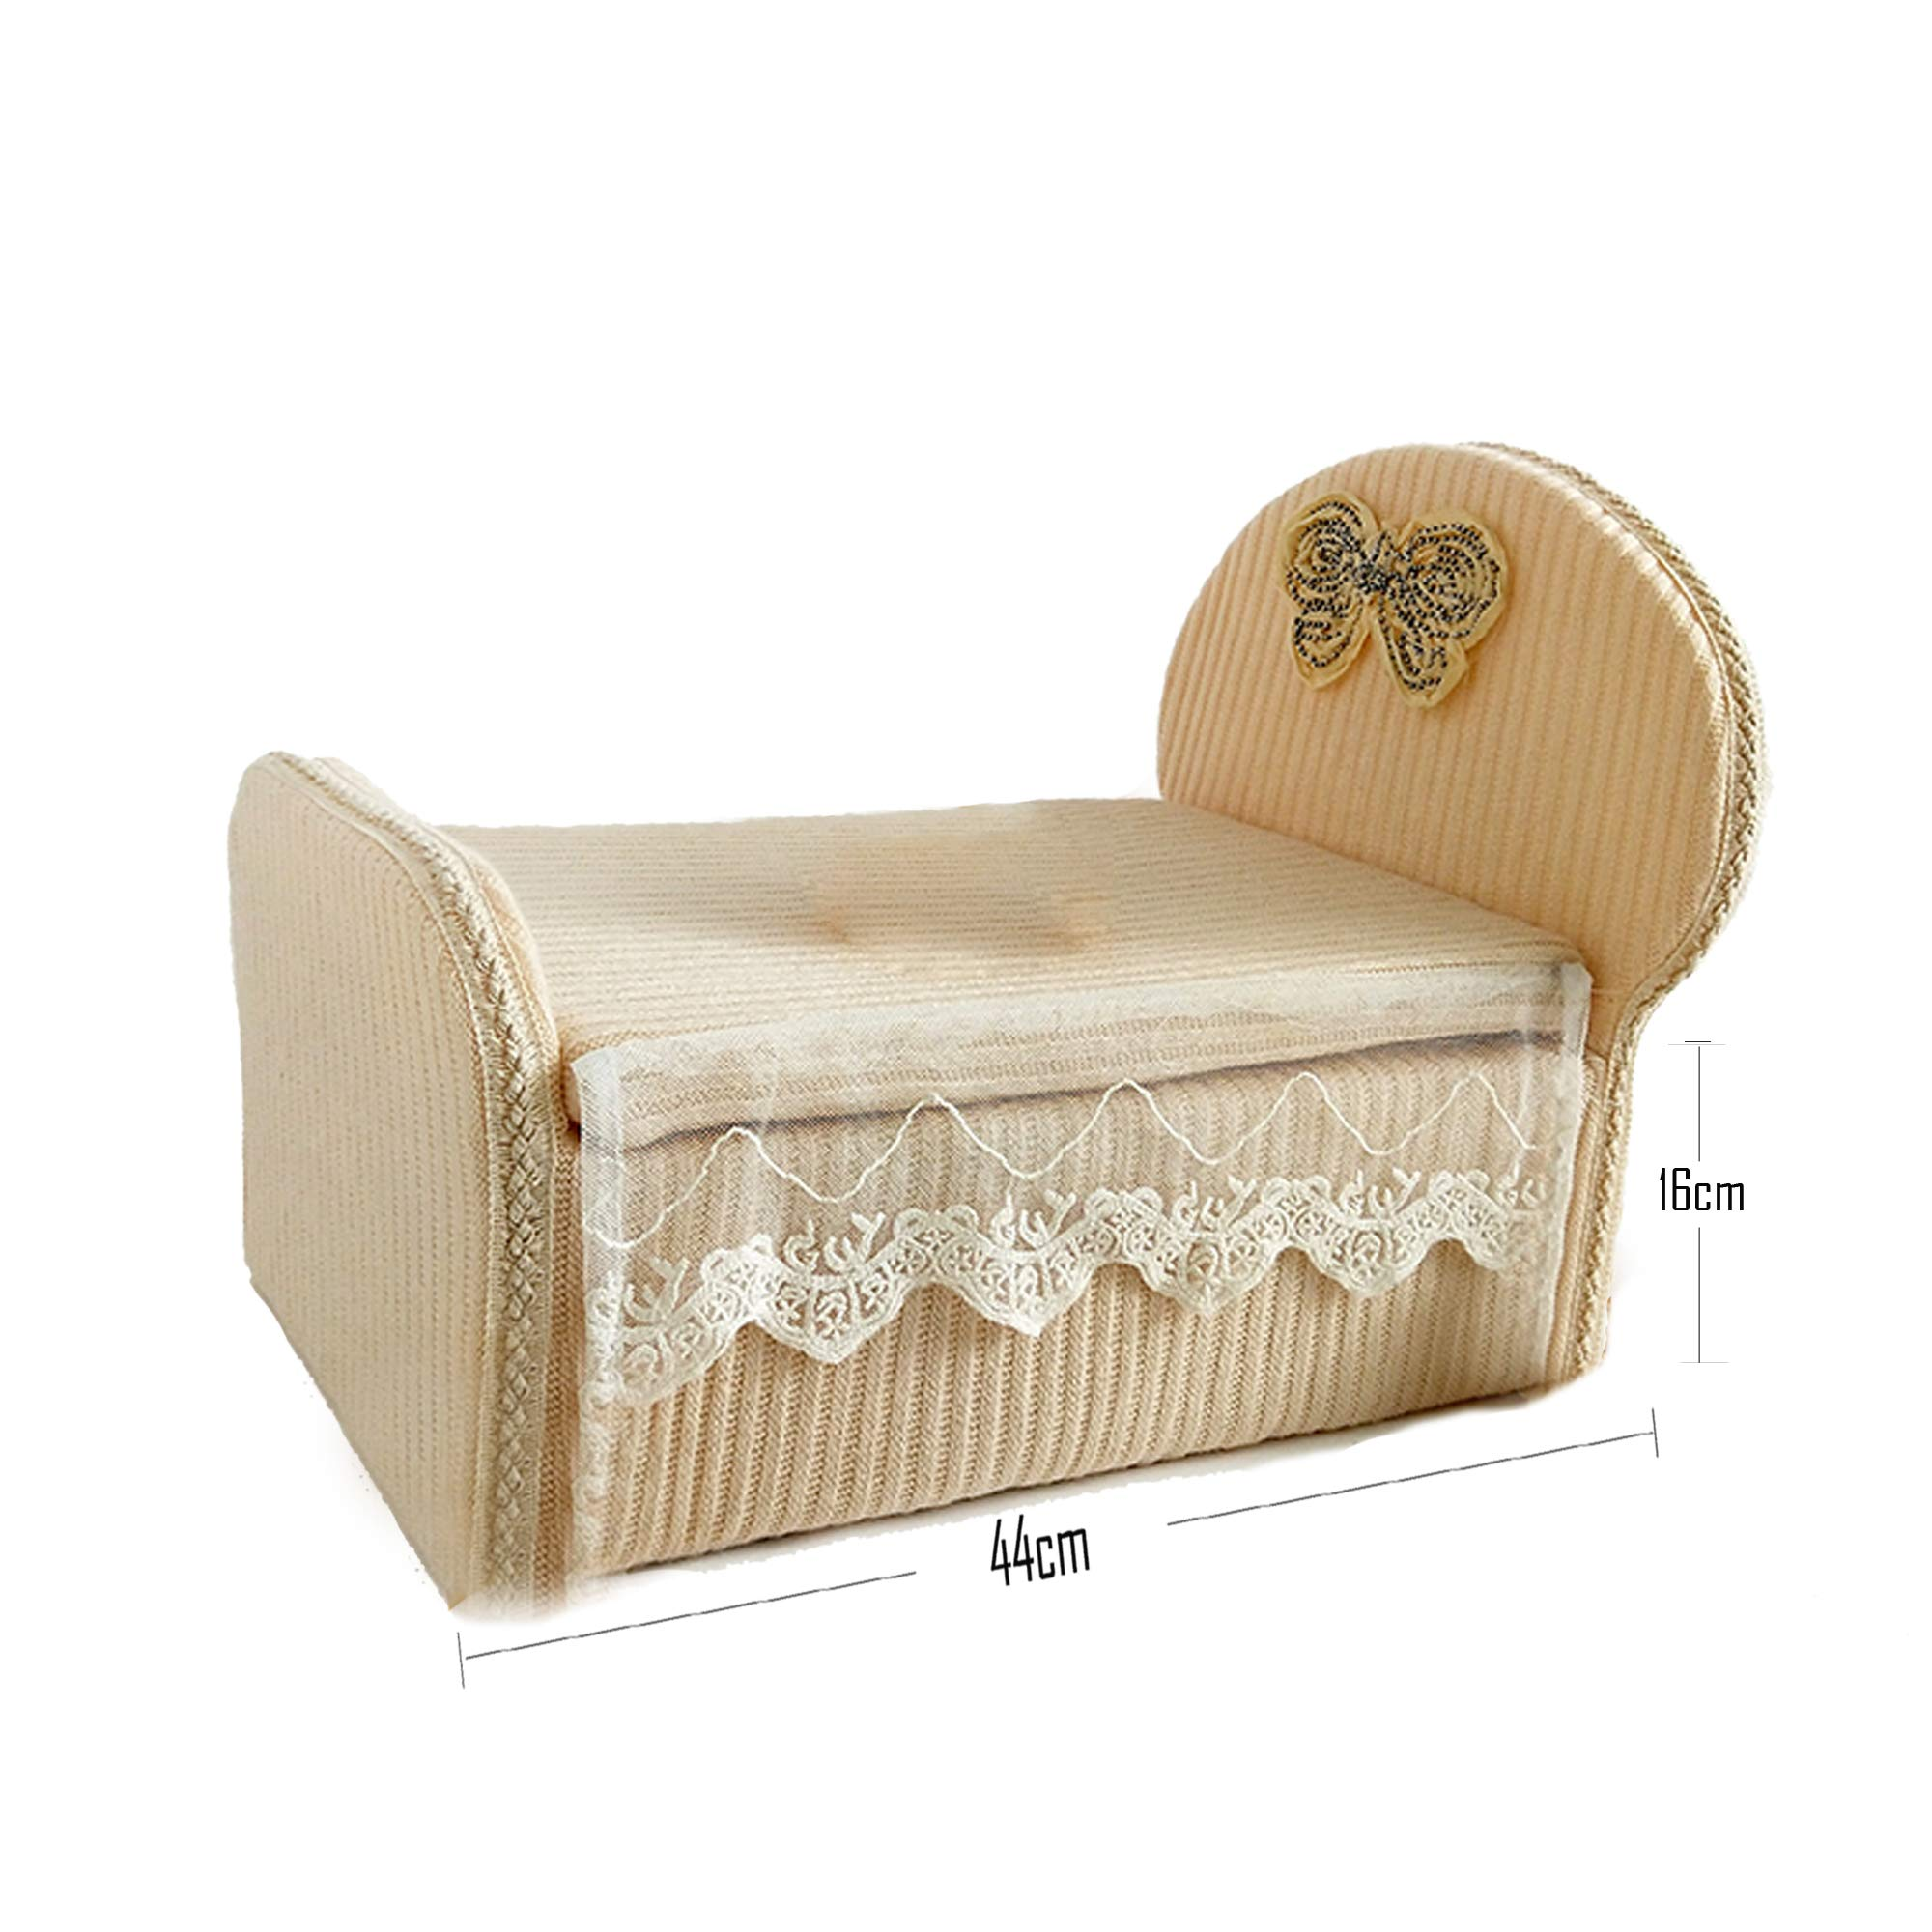 Newborn Foam Bed Photography Props 0-6 Months Professional Posing Aid 17''6.3'' (Beige)